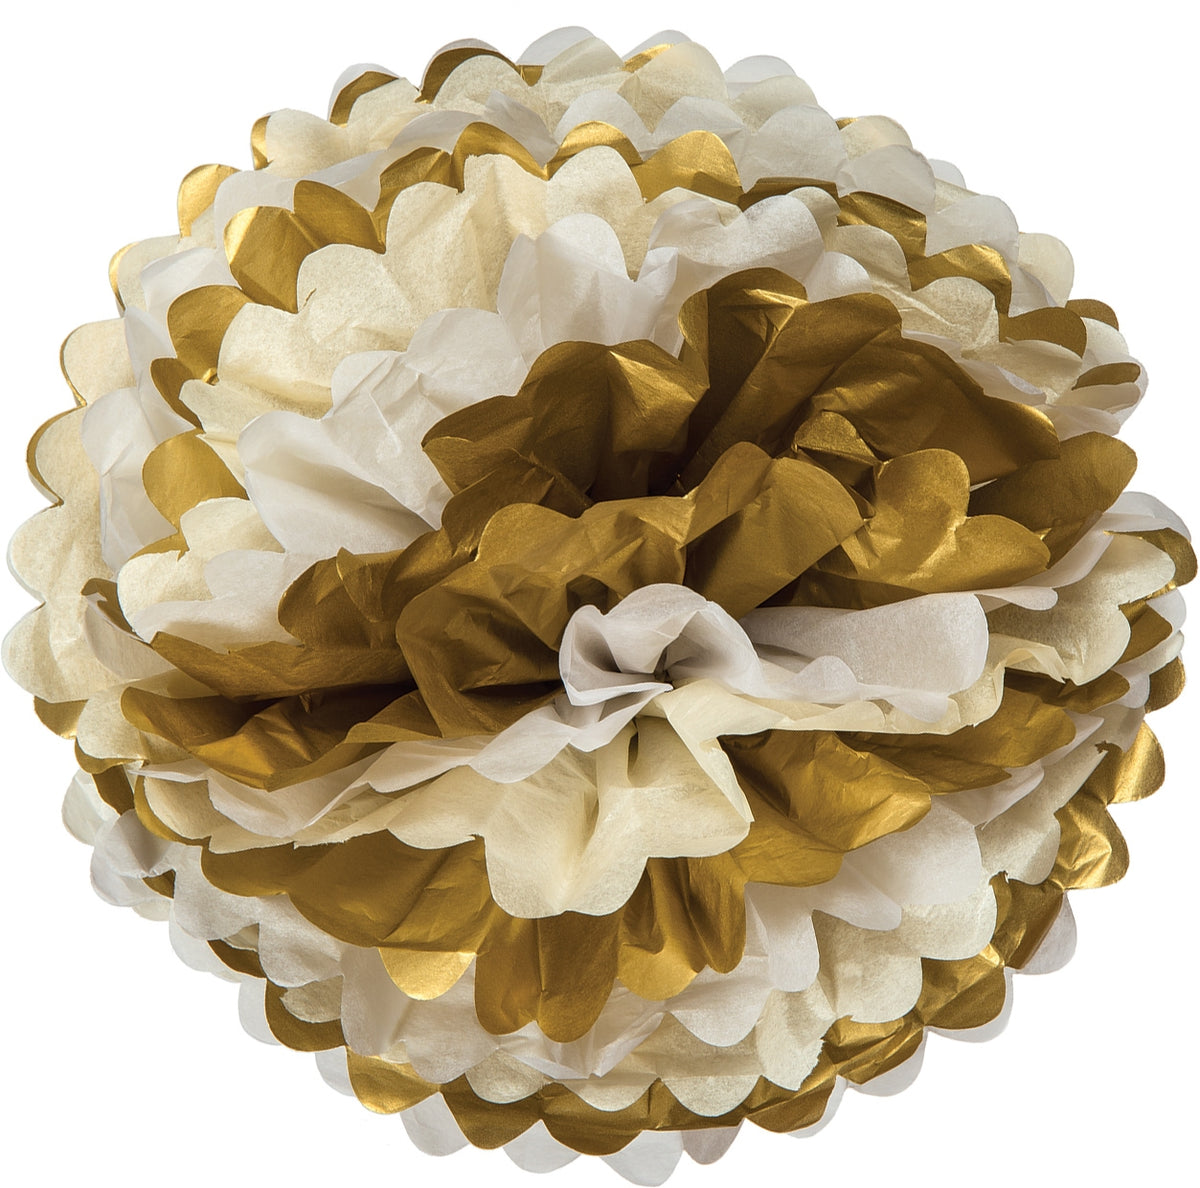 Mixed Whites with Gold Tissue Paper Flower Pom Pom 15 inch - Luna Bazaar | Boho & Vintage Style Decor